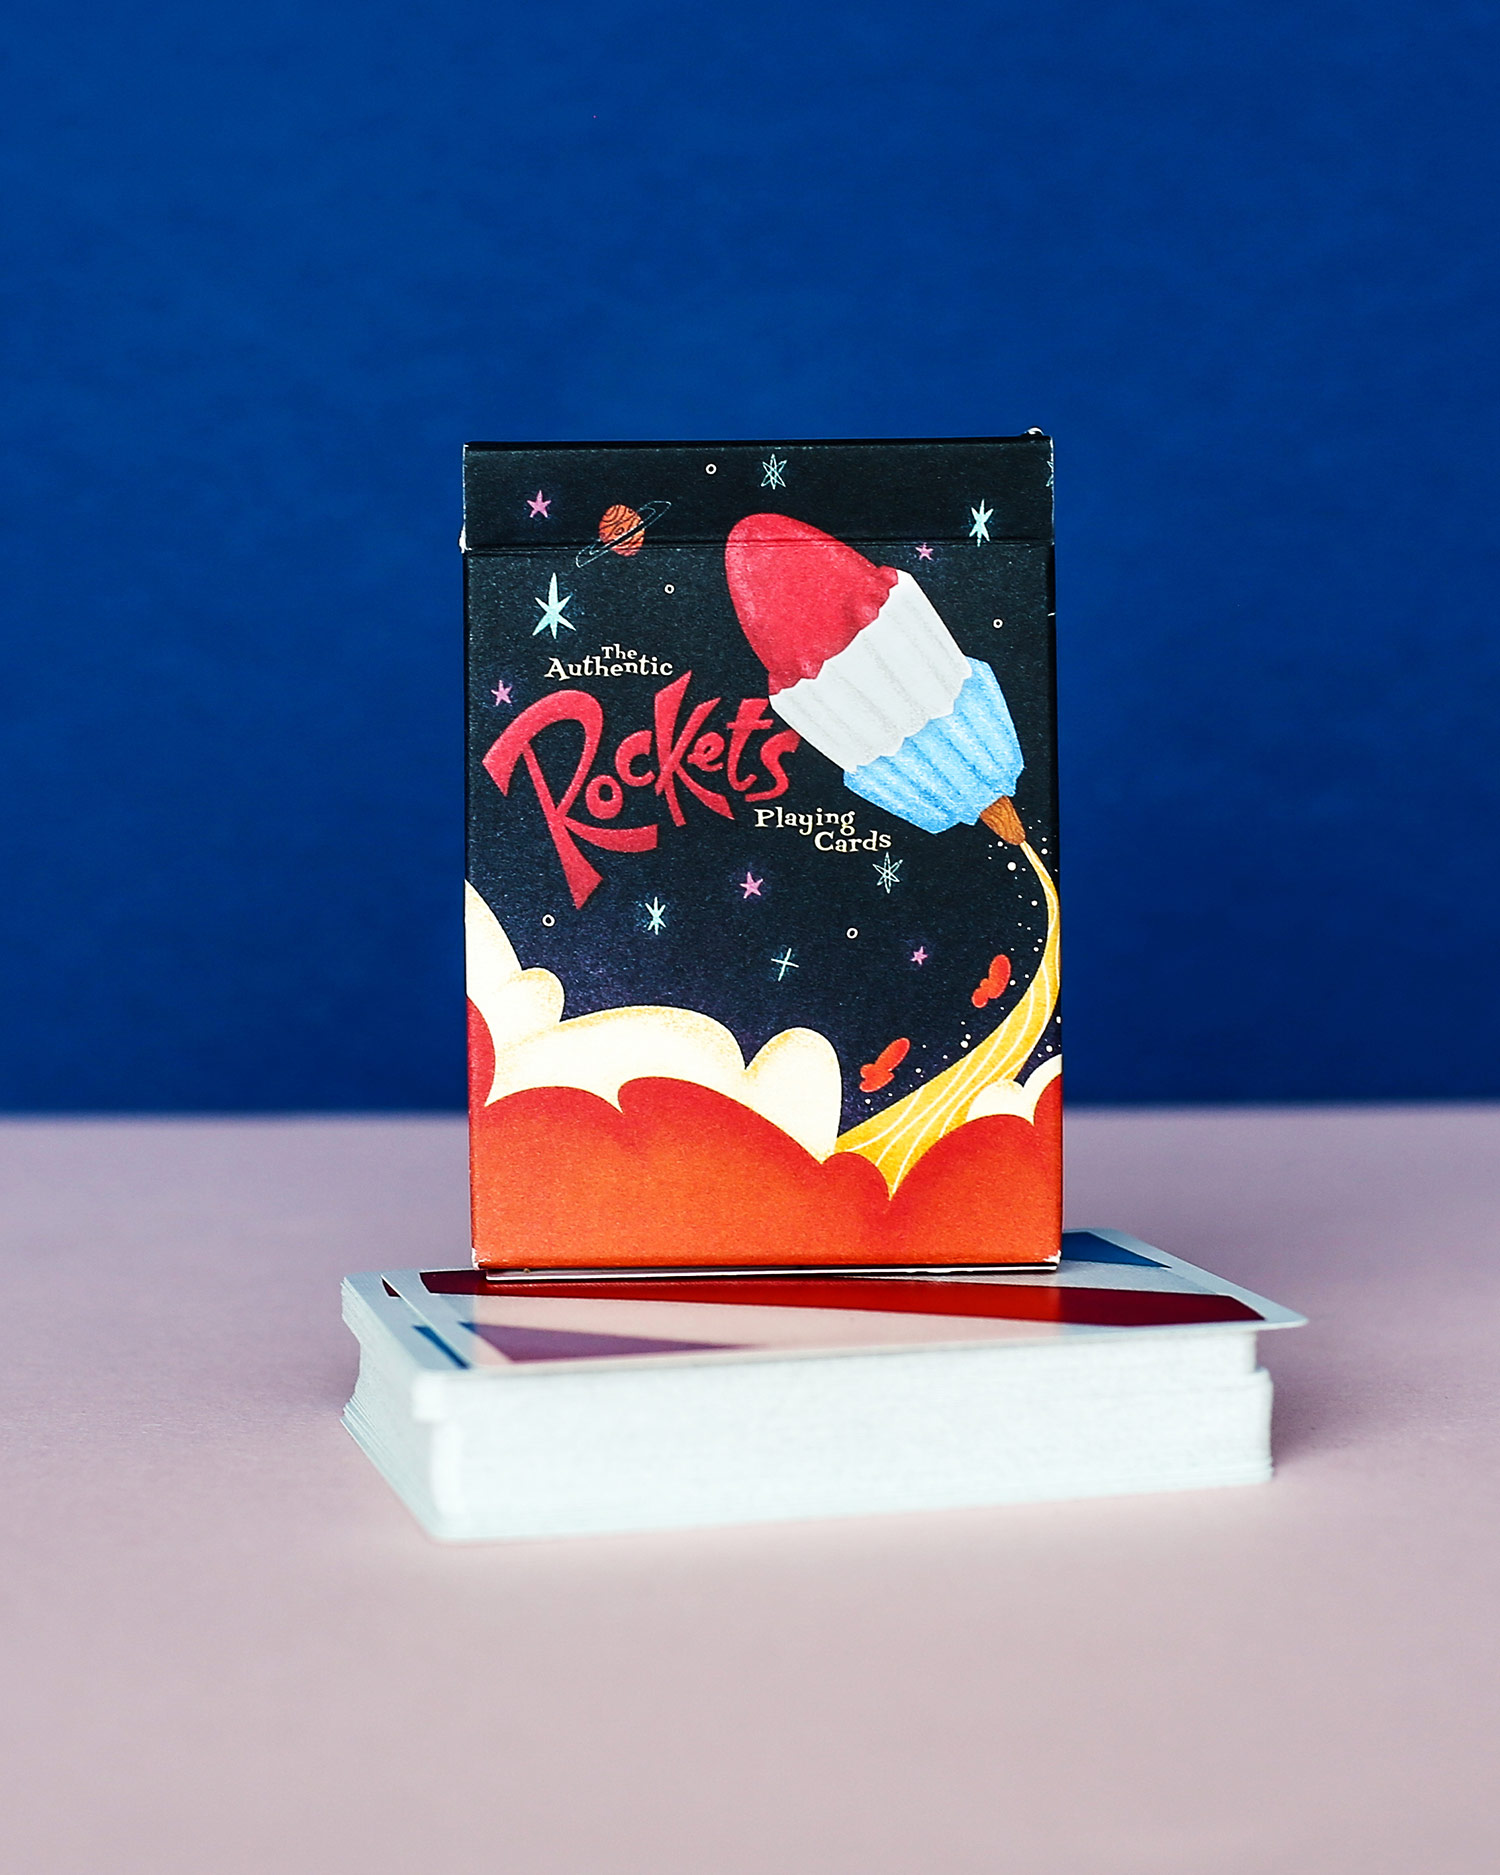 Rockets - As the go-to designer for Ellusionist, Oban works with a team of highly skilled magicians and product creators. This team is constantly reinventing an ancient tradition and he is proud to be a member of this creative cohort.The Rockets playing cards feature classical cartoon styling, inspired by 1960's illustration in homage to the classics like Hanna Barbara.They have a fun and summery feel, with a bright and bold palette.Working outside of his usual wheel house, Oban researched and adapted his illustration style to fit the lighter, more playful tone of the project.